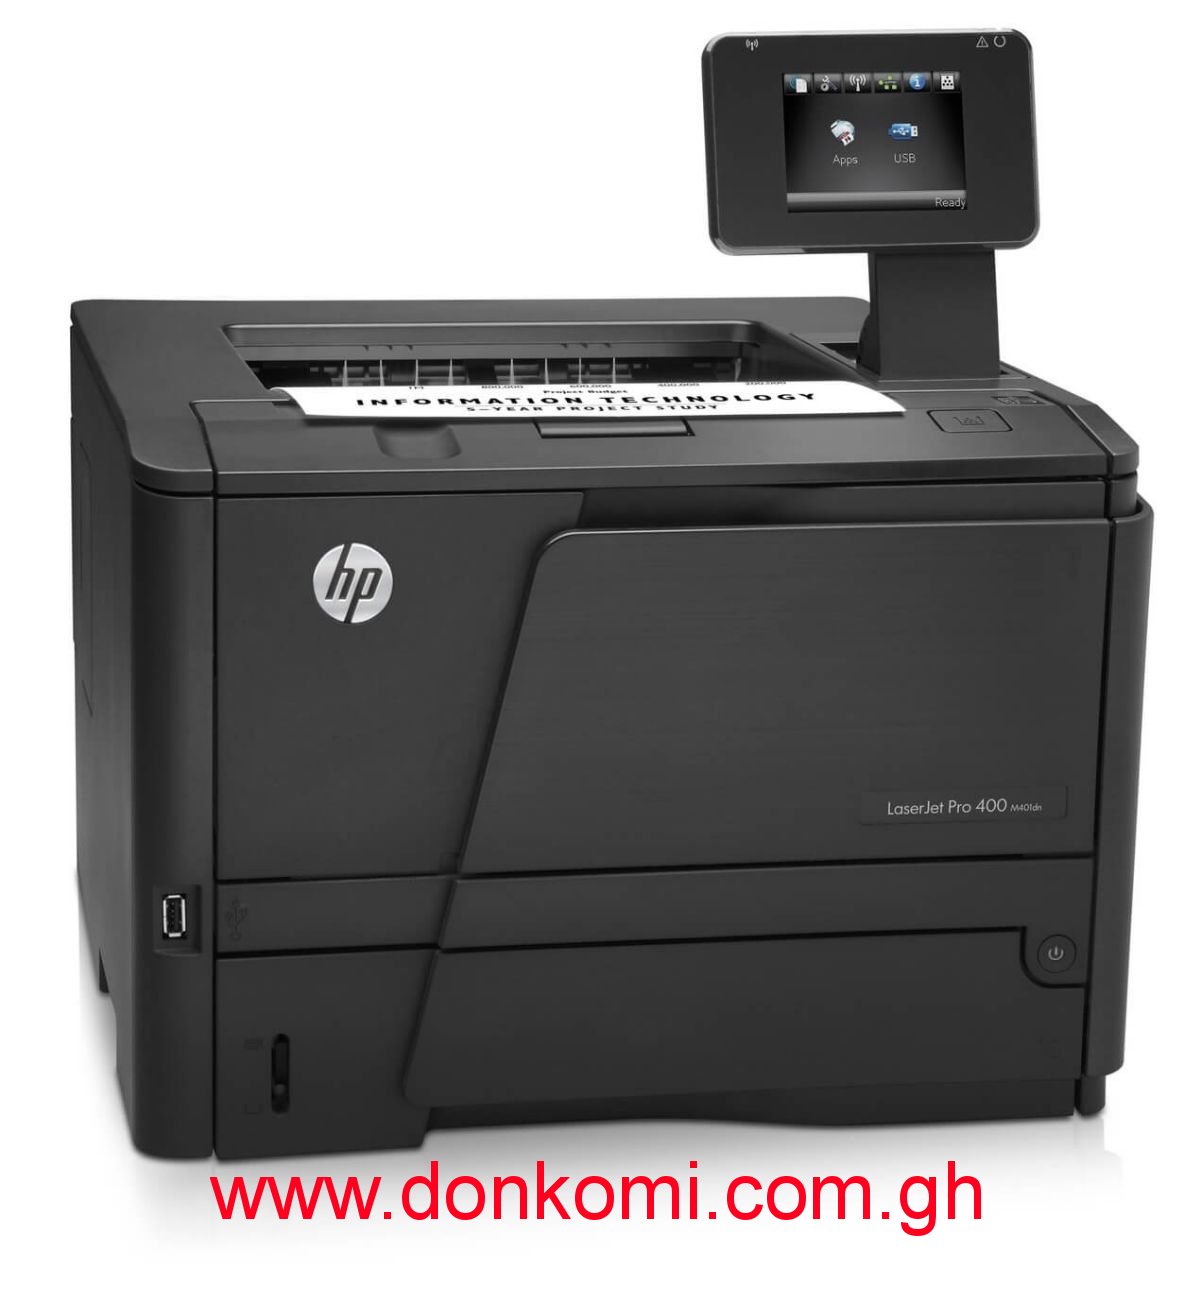 HP LASERJET PRO PRINTER (401DN)